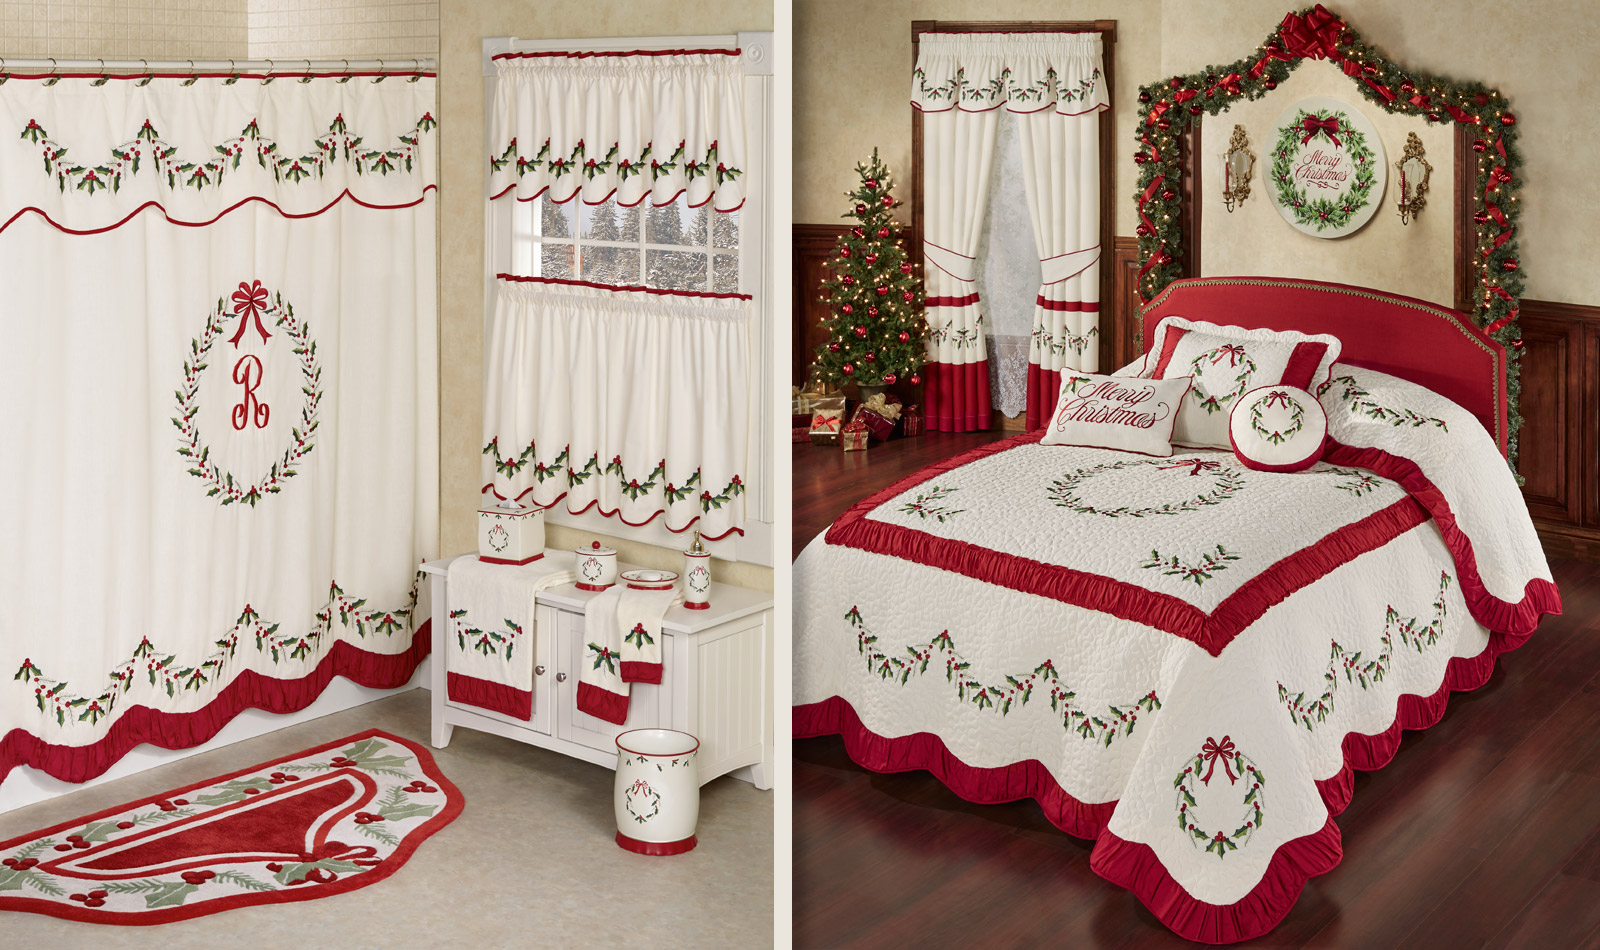 Get The Look - Holly Wreath Holiday Bedroom